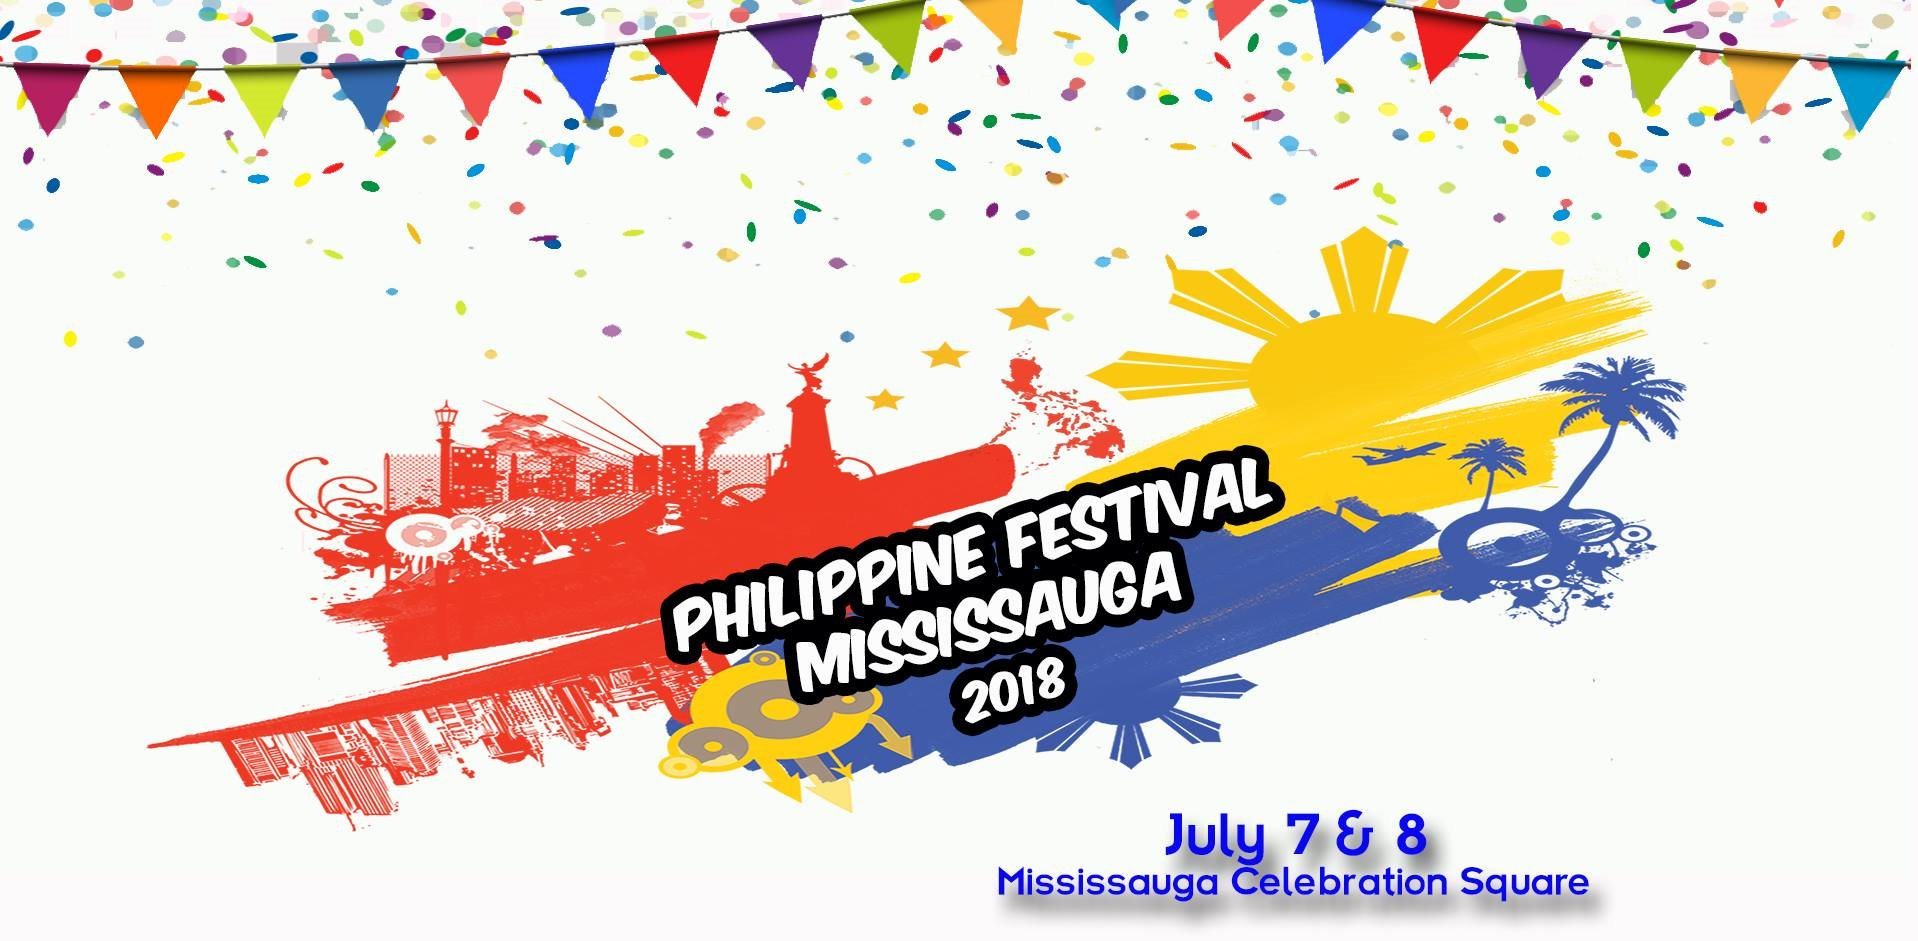 Philippine Festival Mississauga 2018 Google image from http://toronto.carpediem.cd/events/7070865-philippine-festival-mississauga-at-mississauga-celebration-square/